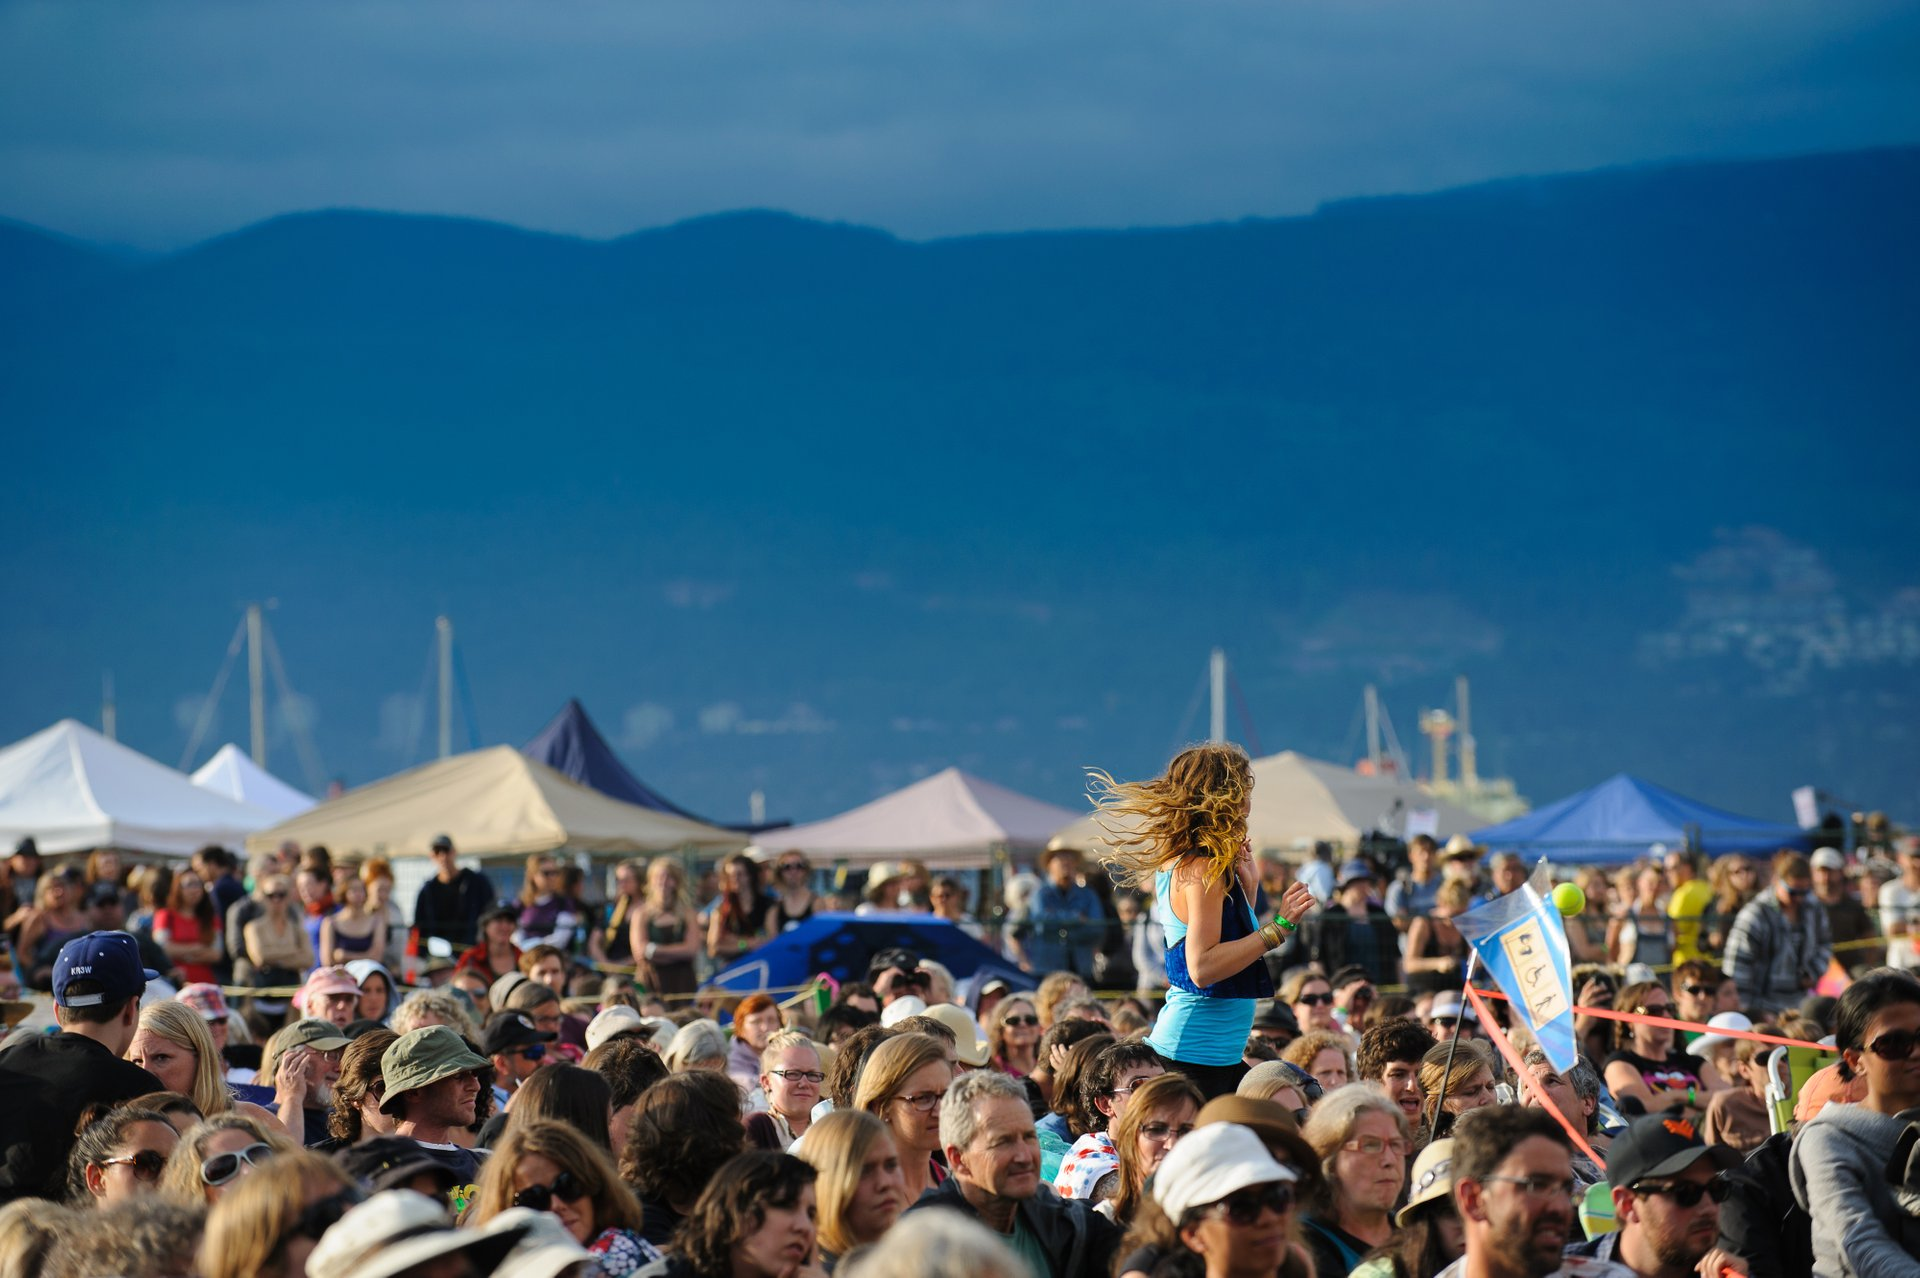 Best time for Vancouver Folk Music Festival in Vancouver